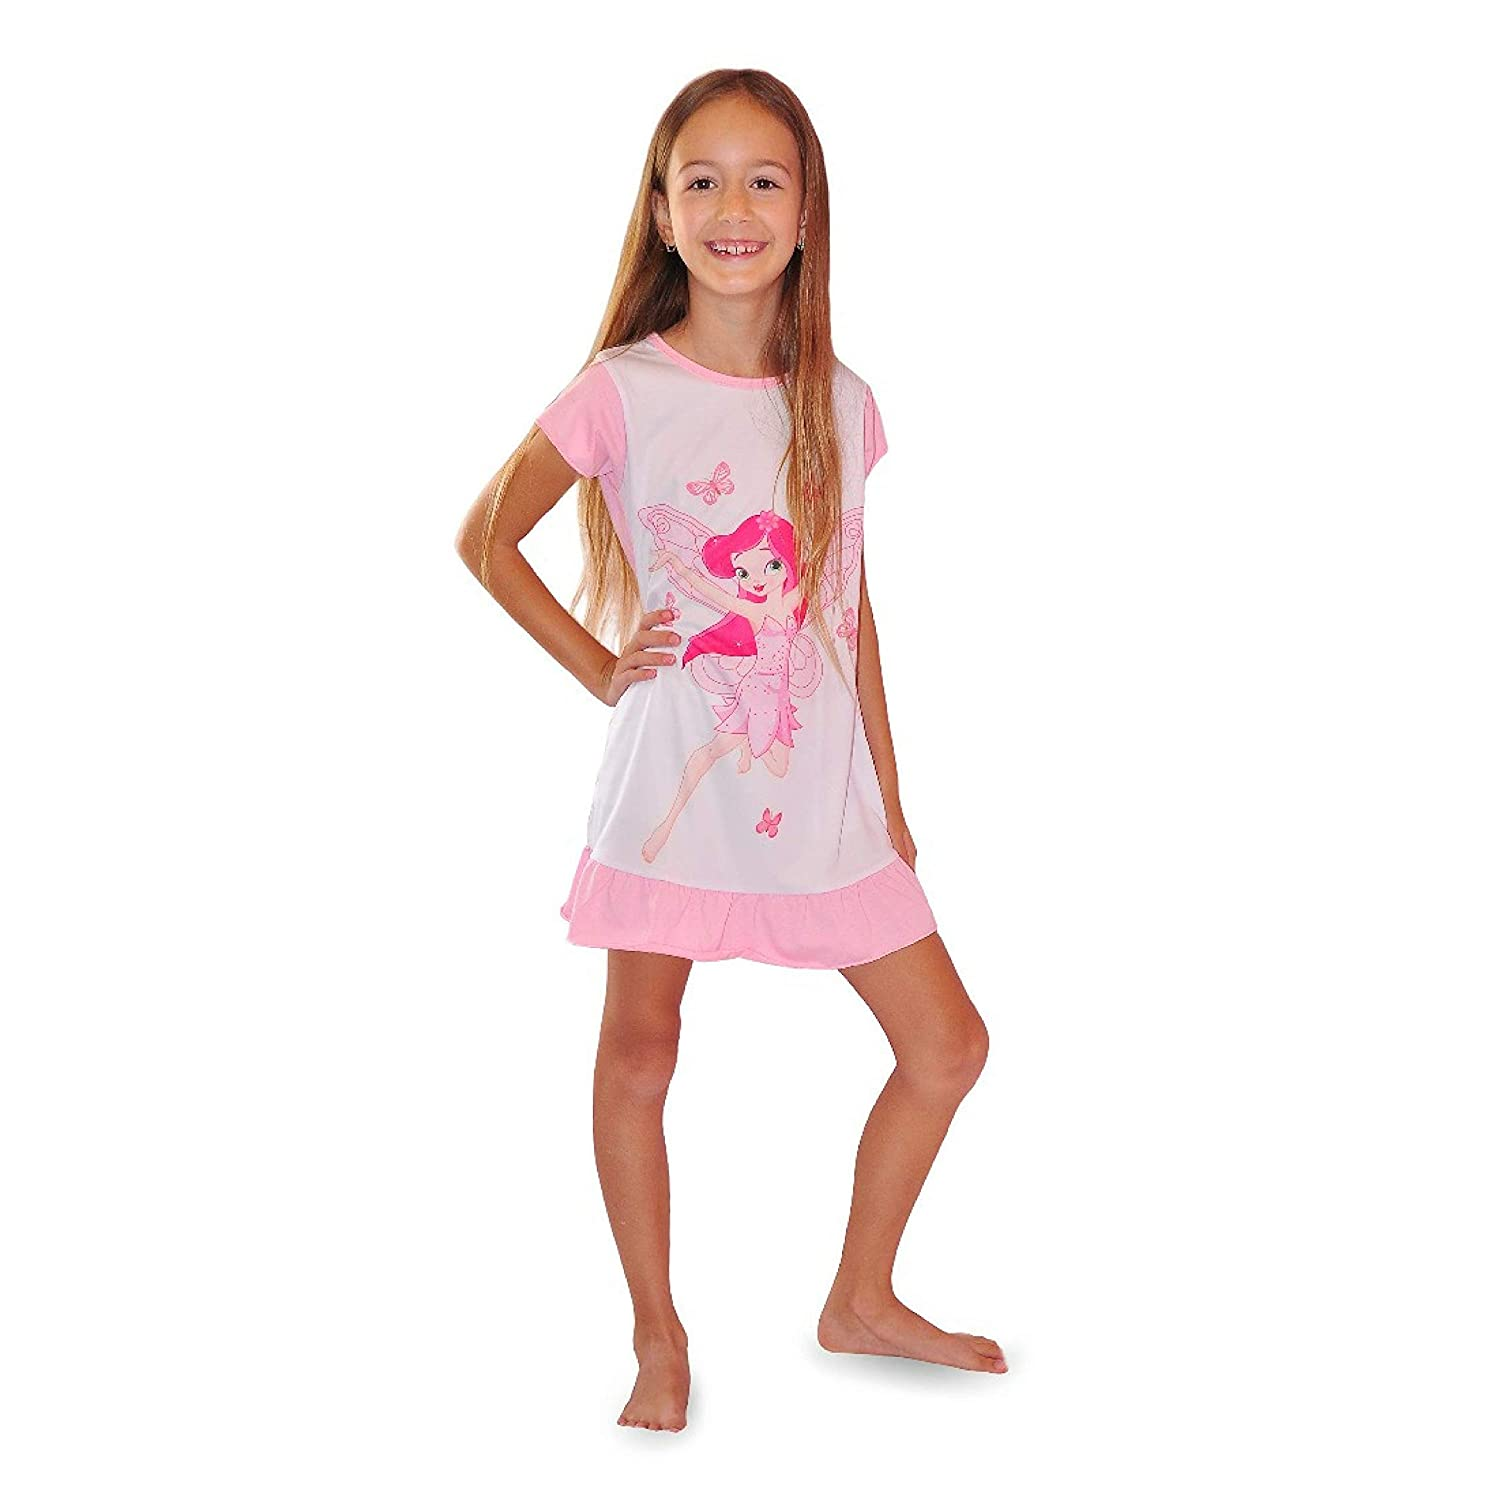 Amazon.com  Fairy Nightgown Cotton Sleepwear Pajamas - Unique Gift Set for  Girls Ages 4-8  Clothing 51bbc756f